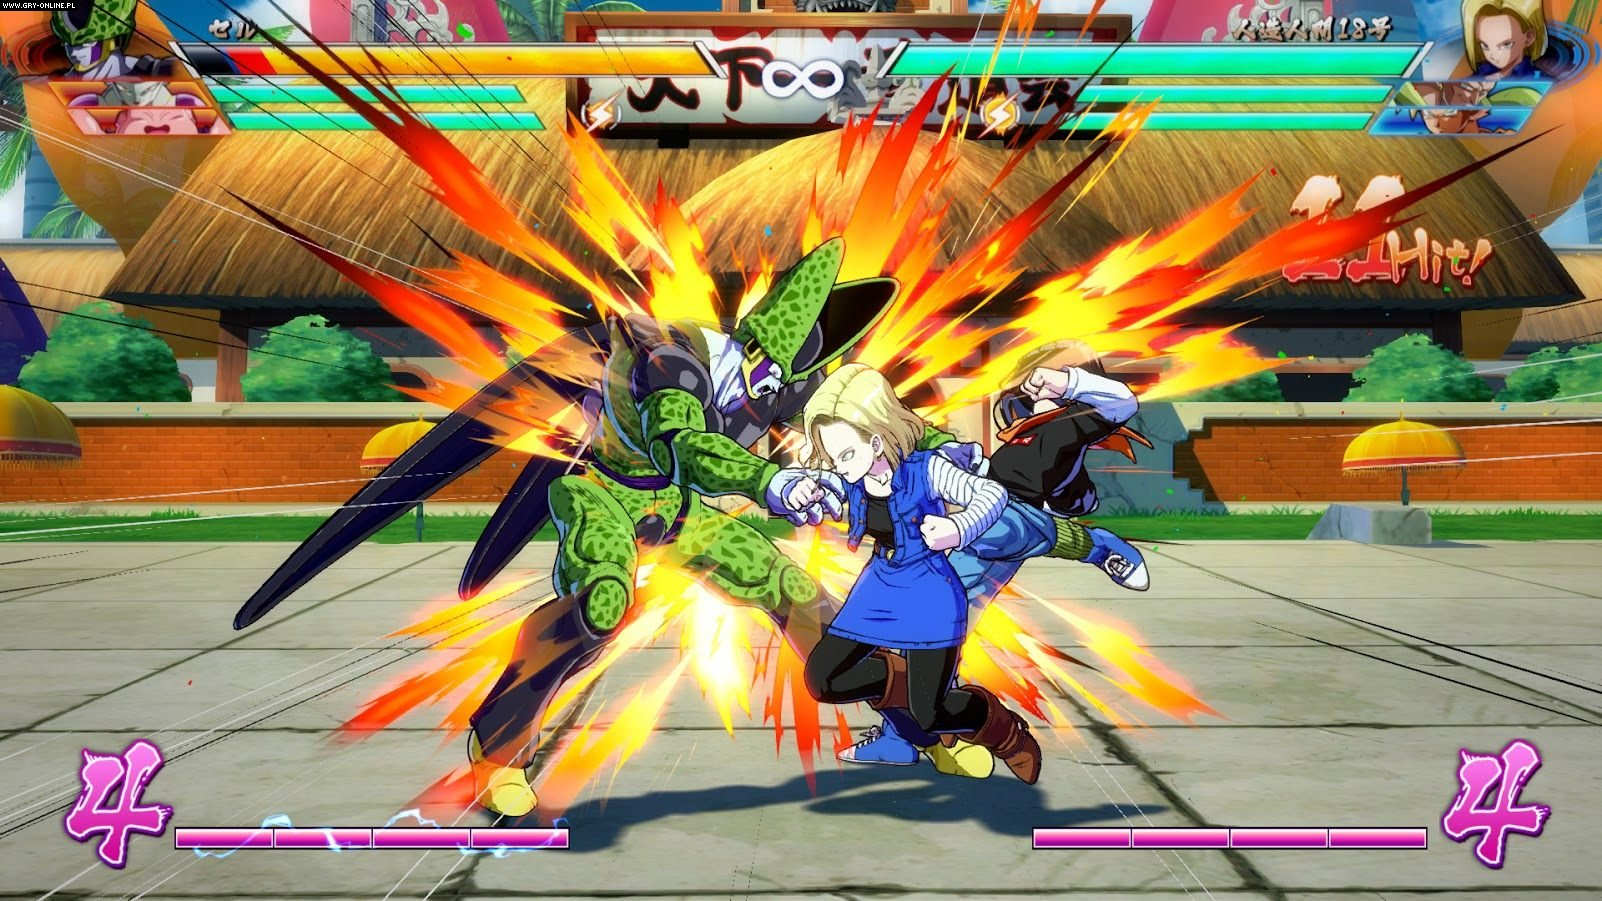 Dragon Ball FighterZ PC, PS4, XONE Games Image 81/107, Arc System Works, Bandai Namco Entertainment